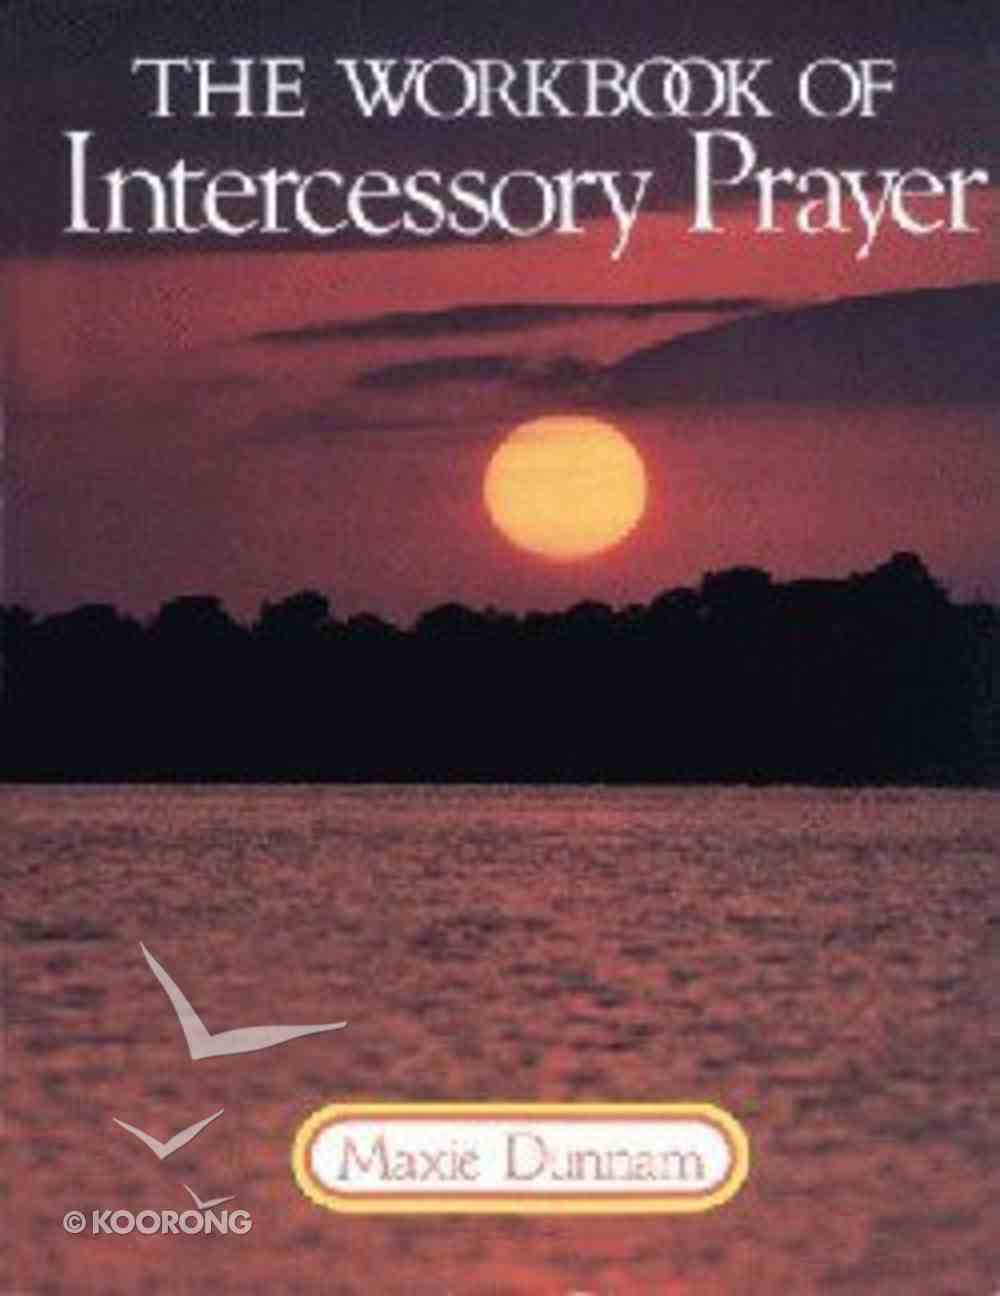 Workbook of Intercessory Prayer (Upper Room Workbook Series) Paperback